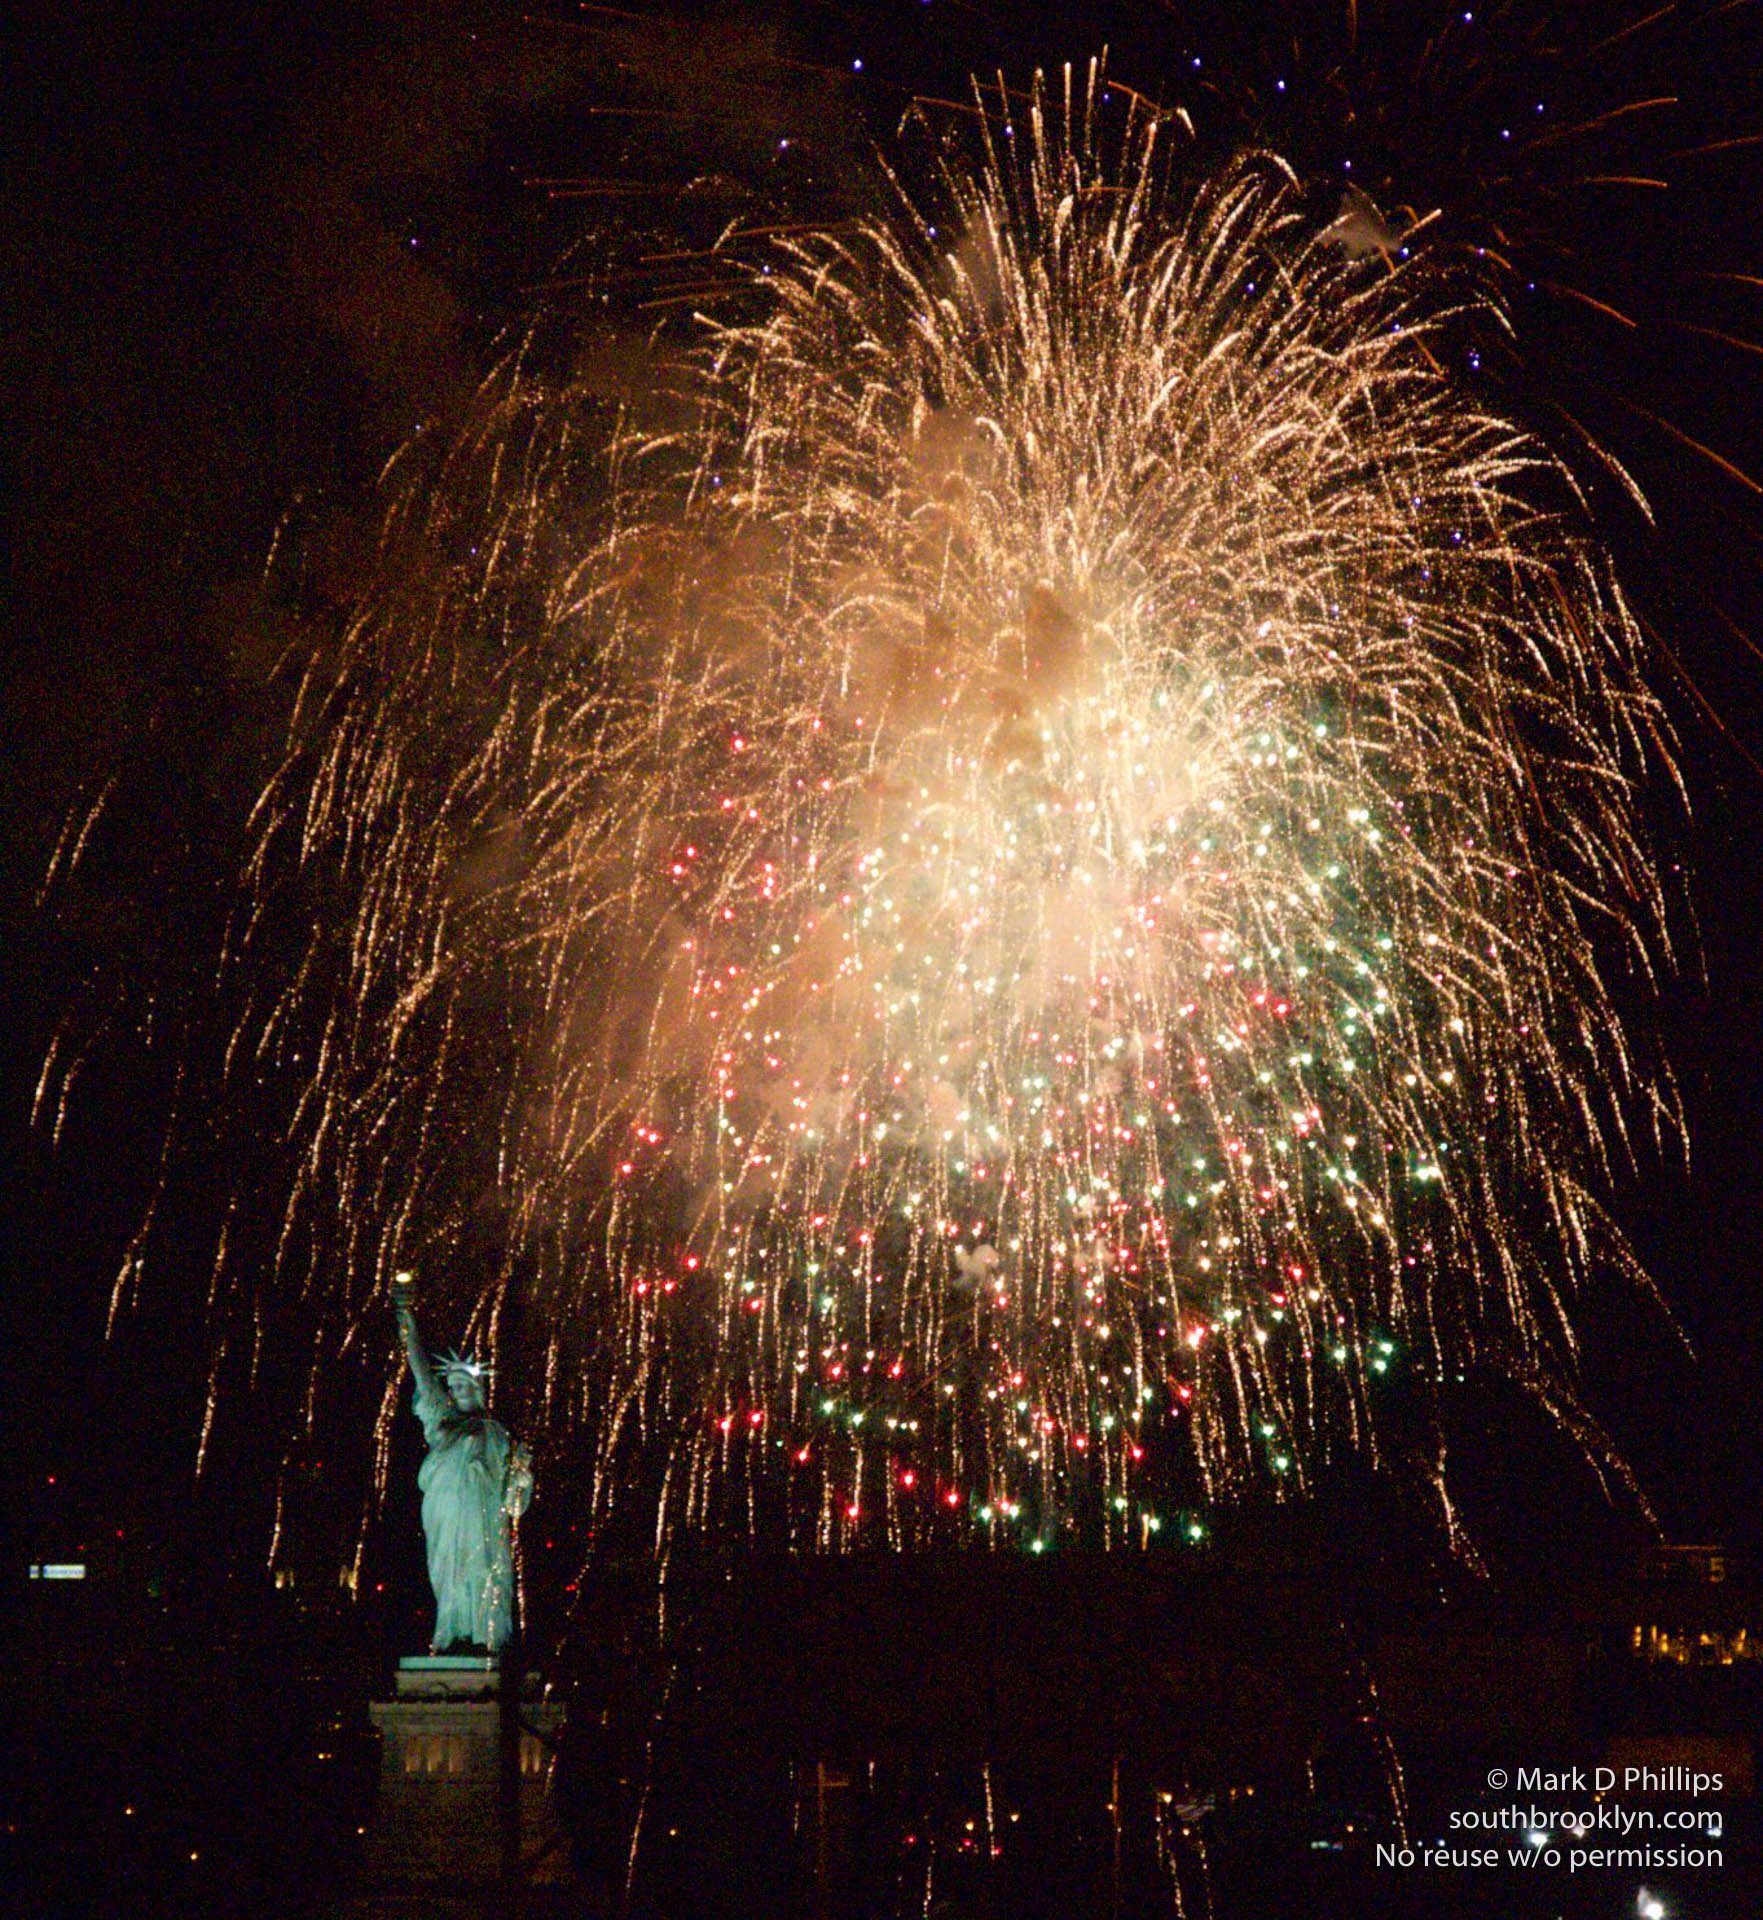 Fireworks over the Statue of Liberty on New Year's Eve at midnight 2015